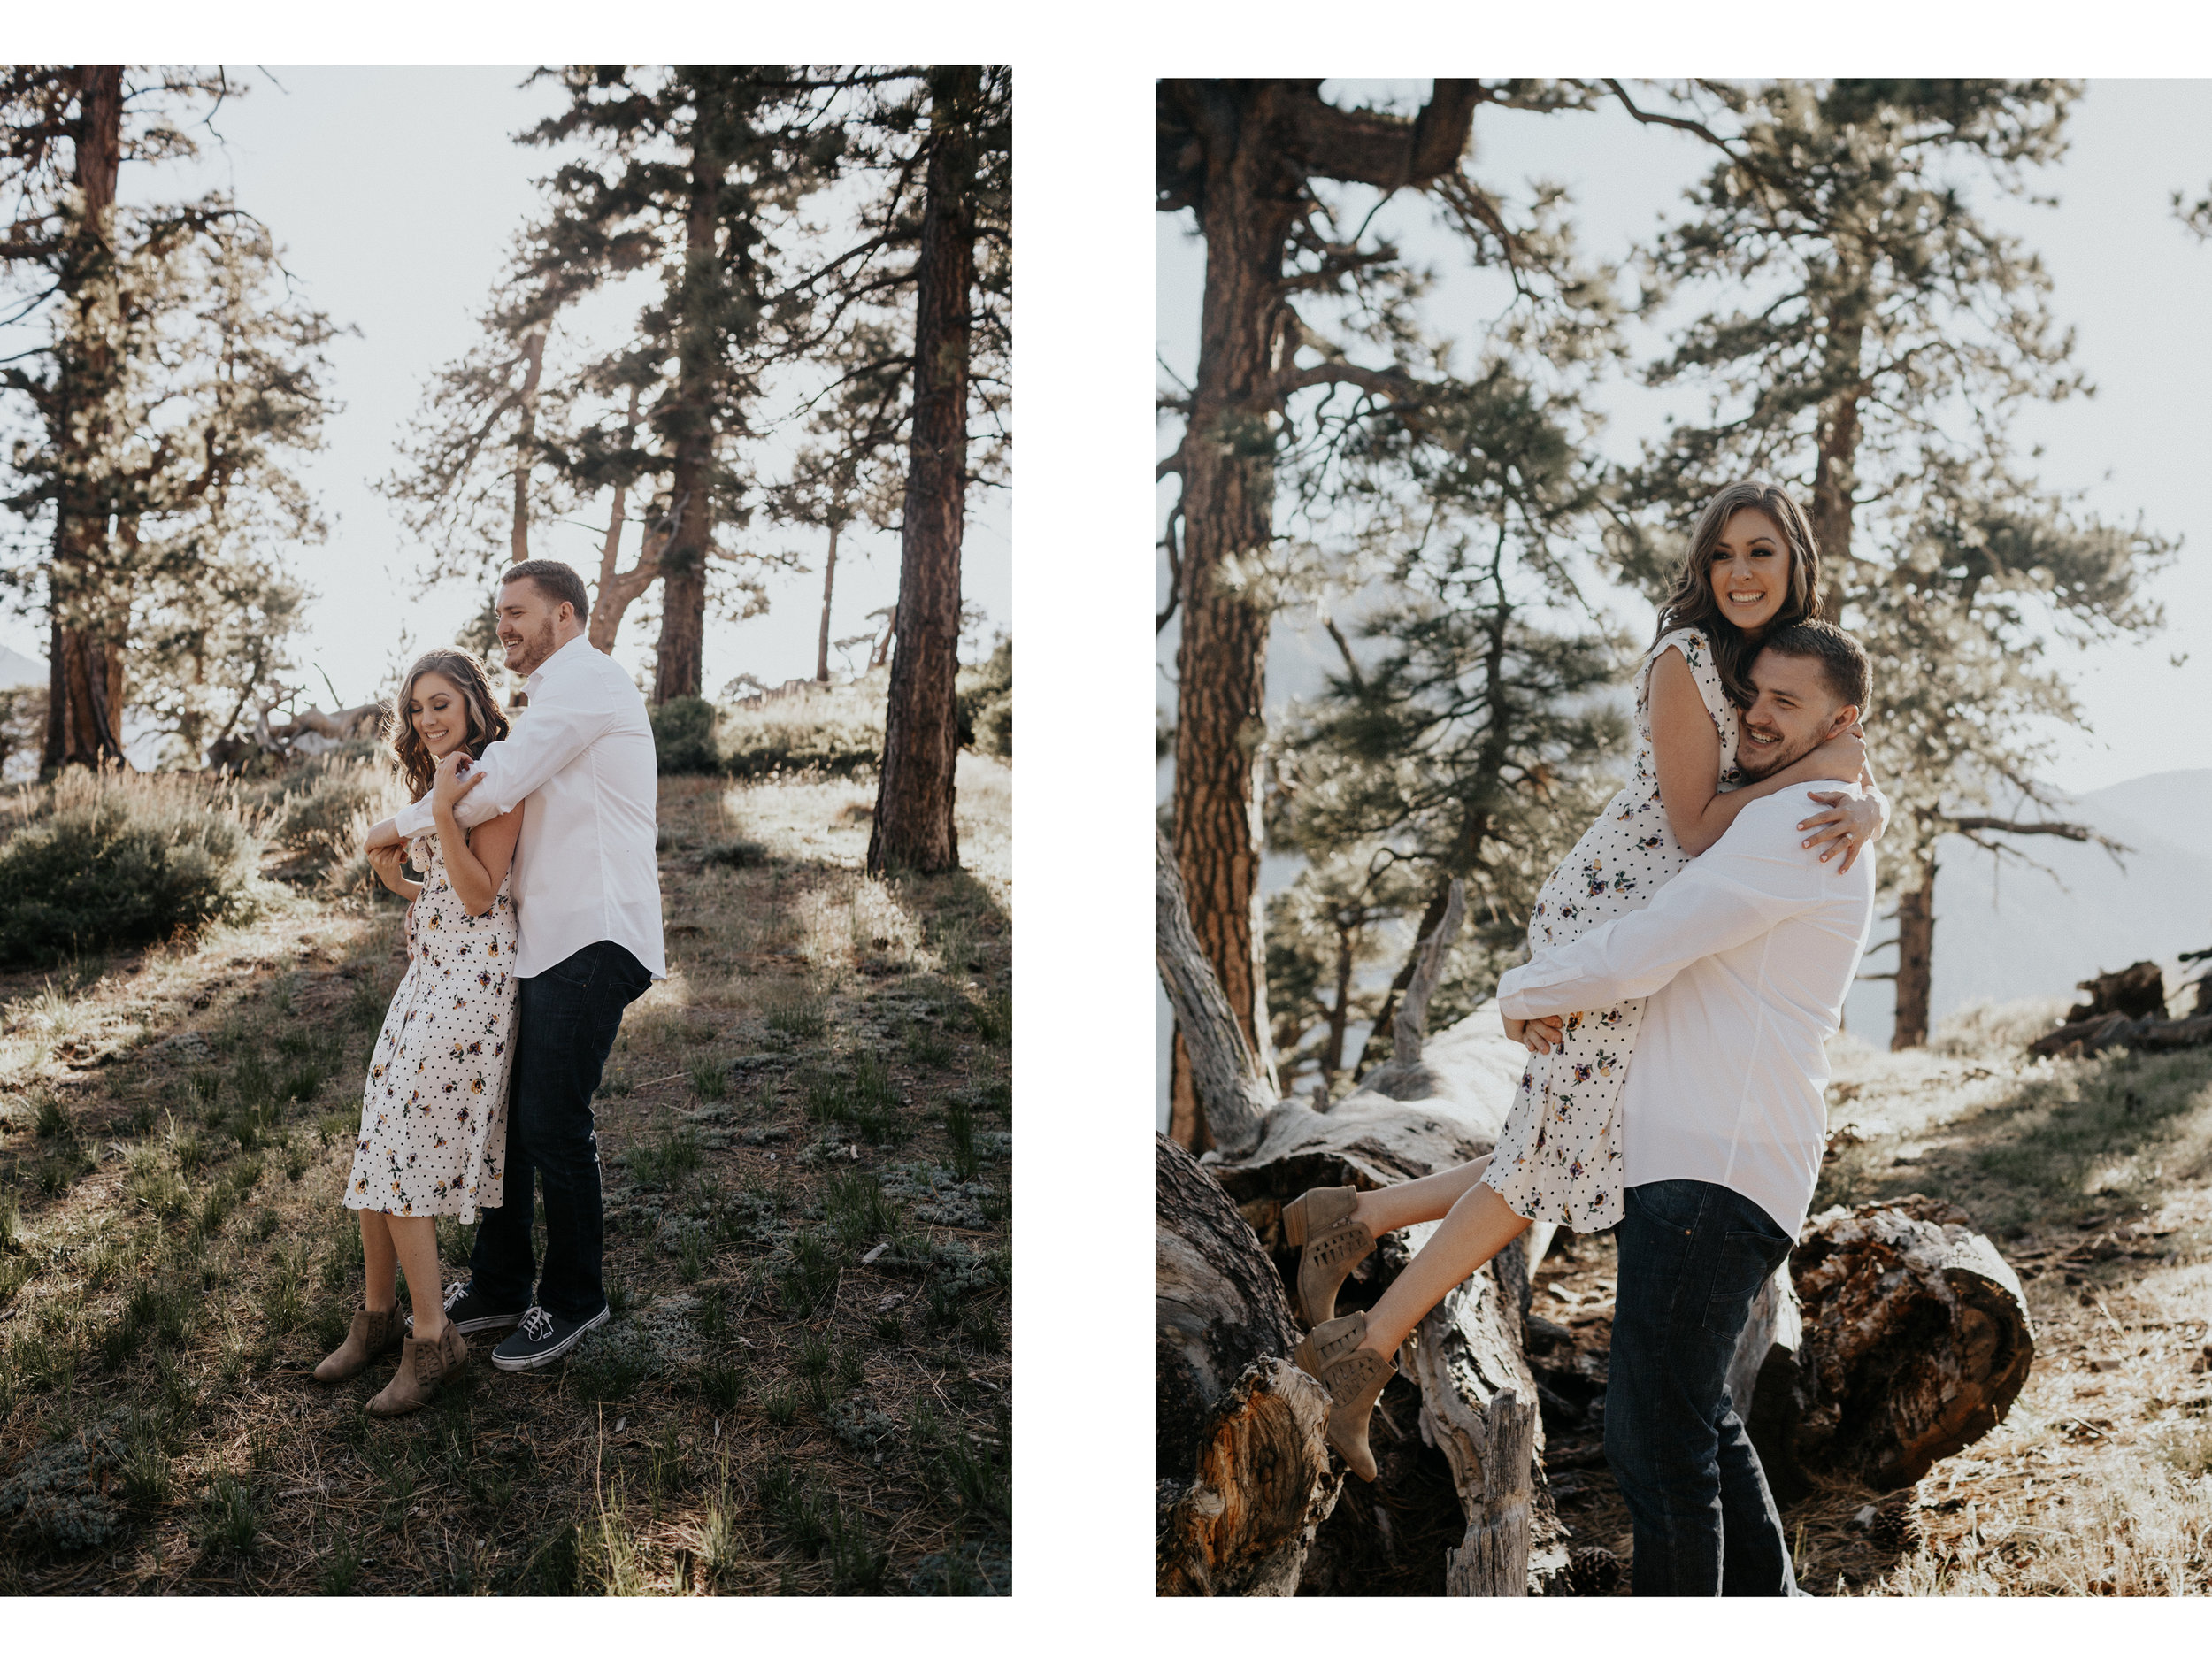 Nick + Lanae Wrightwood2.jpg